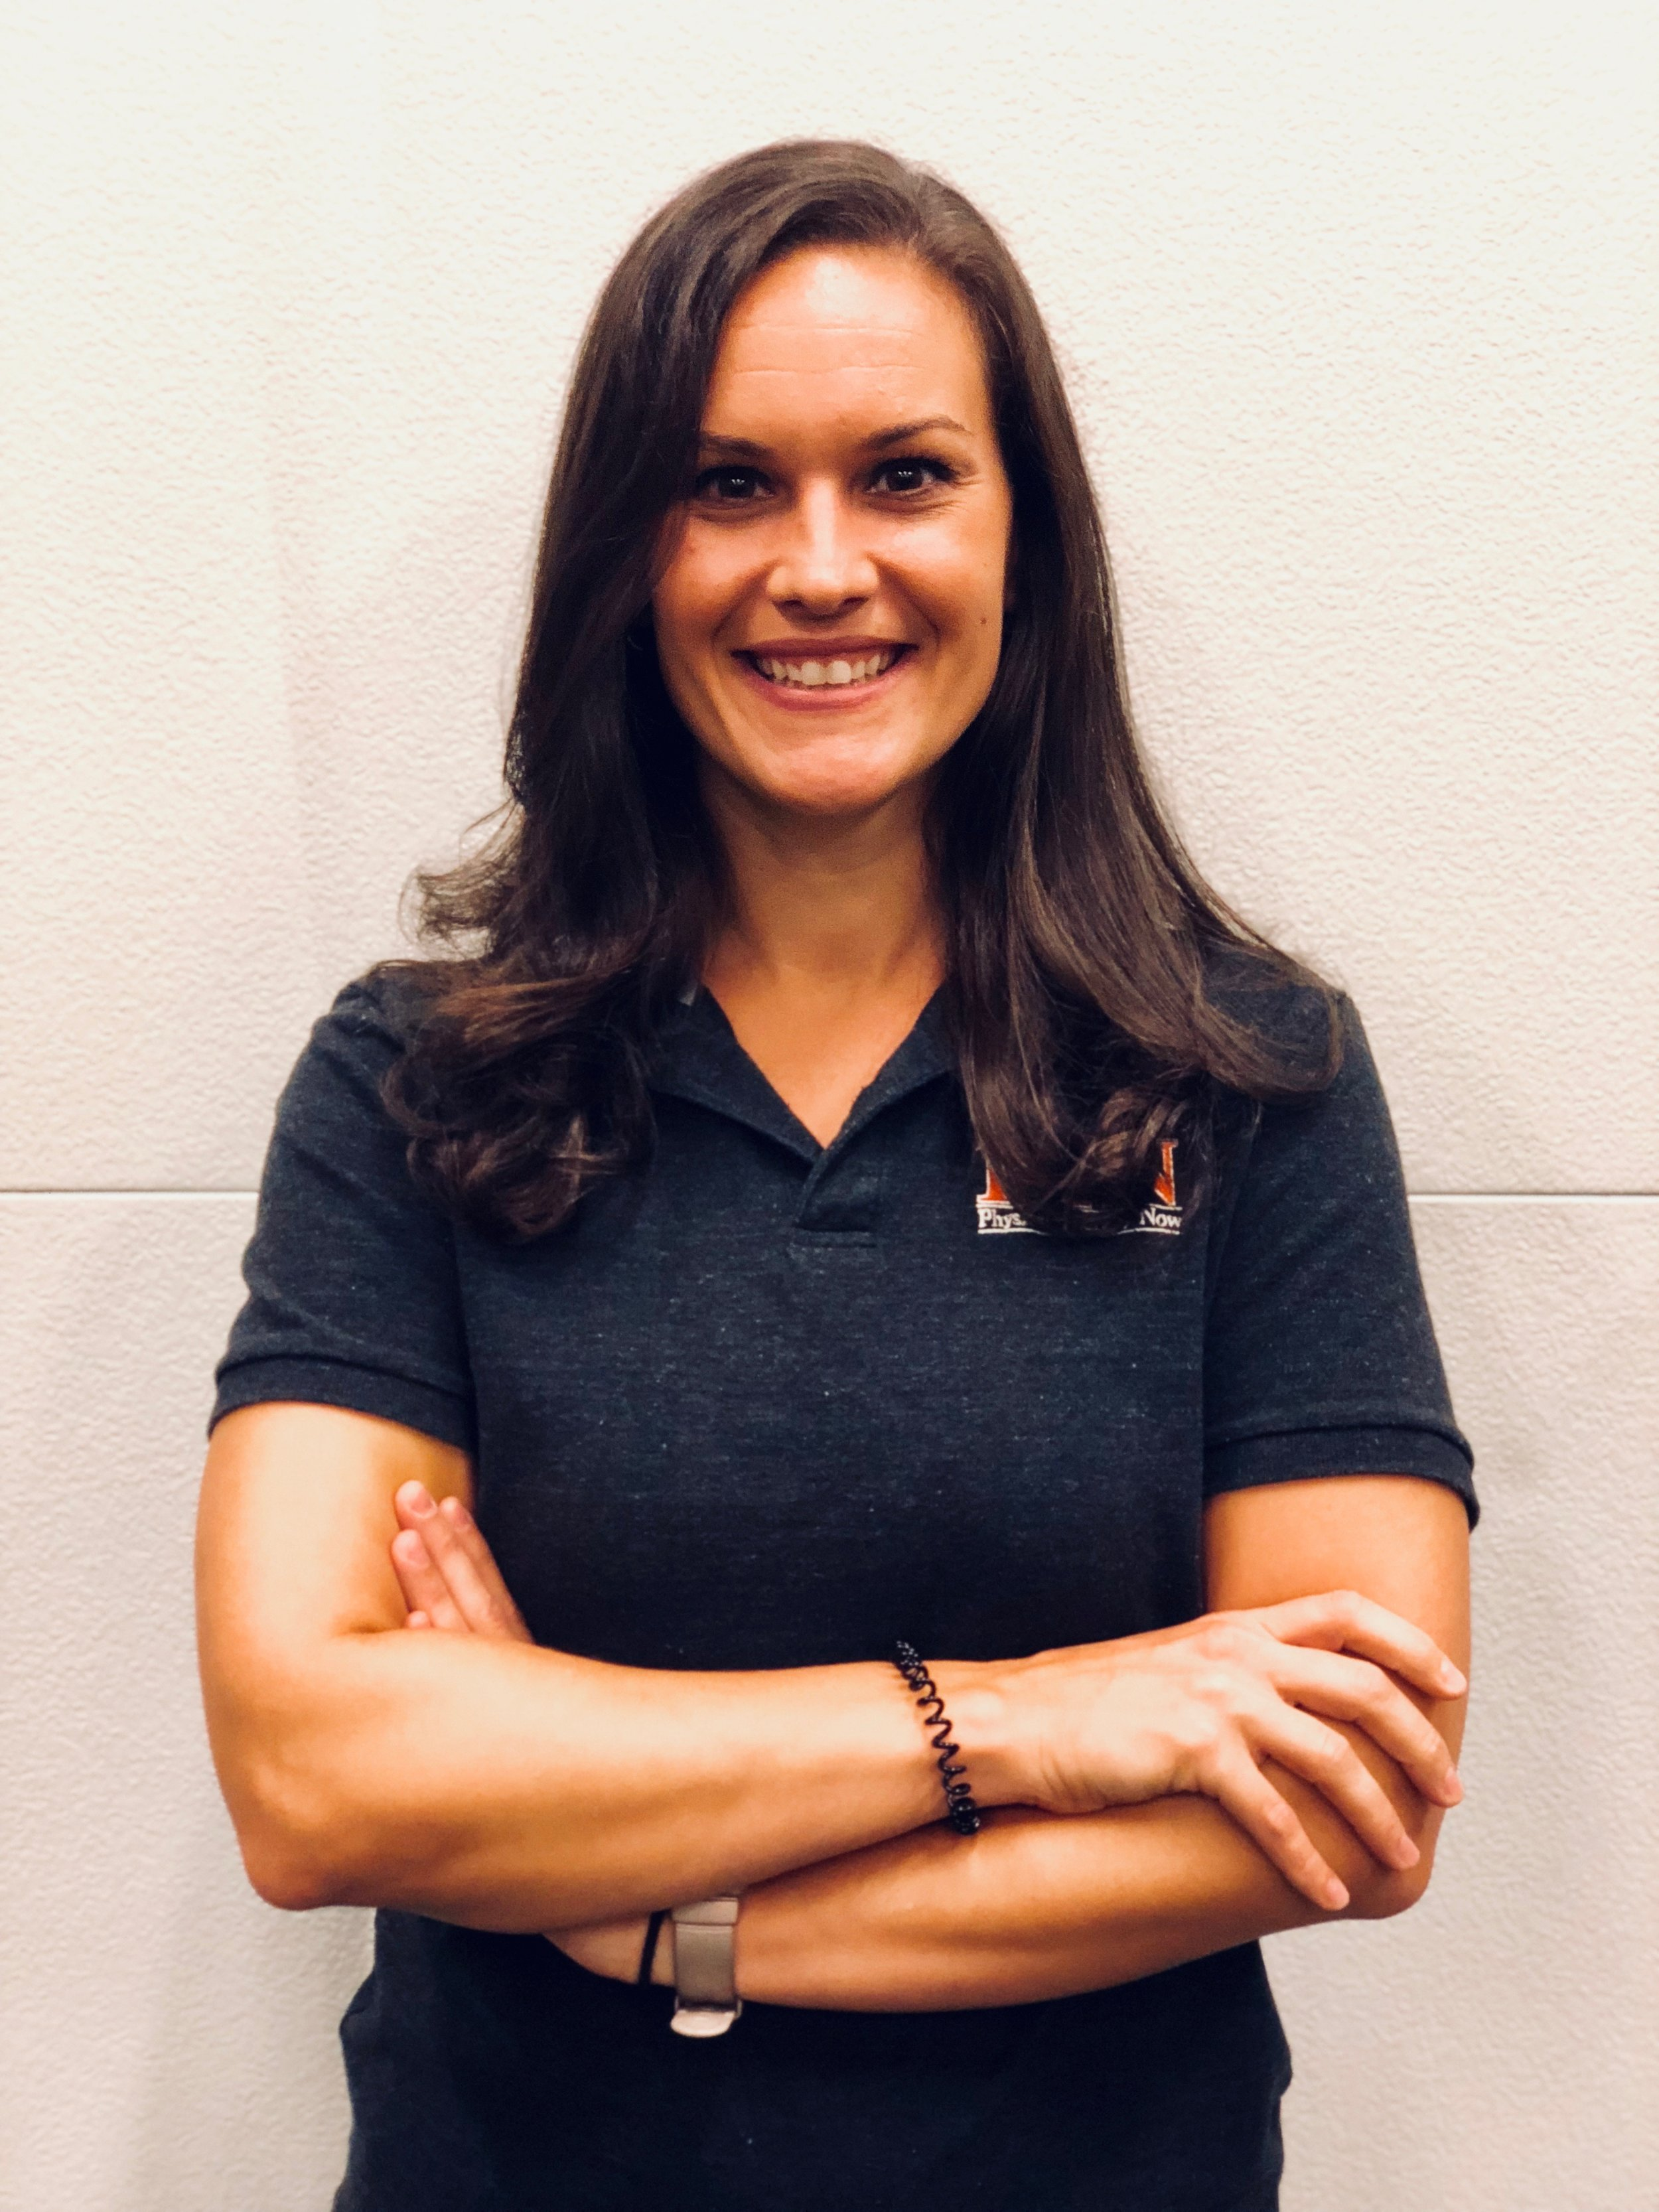 Dr. Lindsey Vrabel, DPT - Director of physical therapyDPT, University of pittsburghDirect access LICENsEAce, mat/reformer pilatesDr. Vrabel brings 13+ years of experience in pittsburgh orthopedic outpatient clinics, where she gained skills in sports medicine and pediatric PT. being a ex-gymnast herself she understands the needs and VULNERABILITY of being a youth athlete. she has an extensive background in spine and sacroiliac (SI) joint dysfunction, as well as hip pathology. Currently Dr. Vrabel is pursuing her certification in orthopedic manual therapy.Her goal is REHABILITATING athletes so that they recover faster, stronger, and without need for surgical intervention.